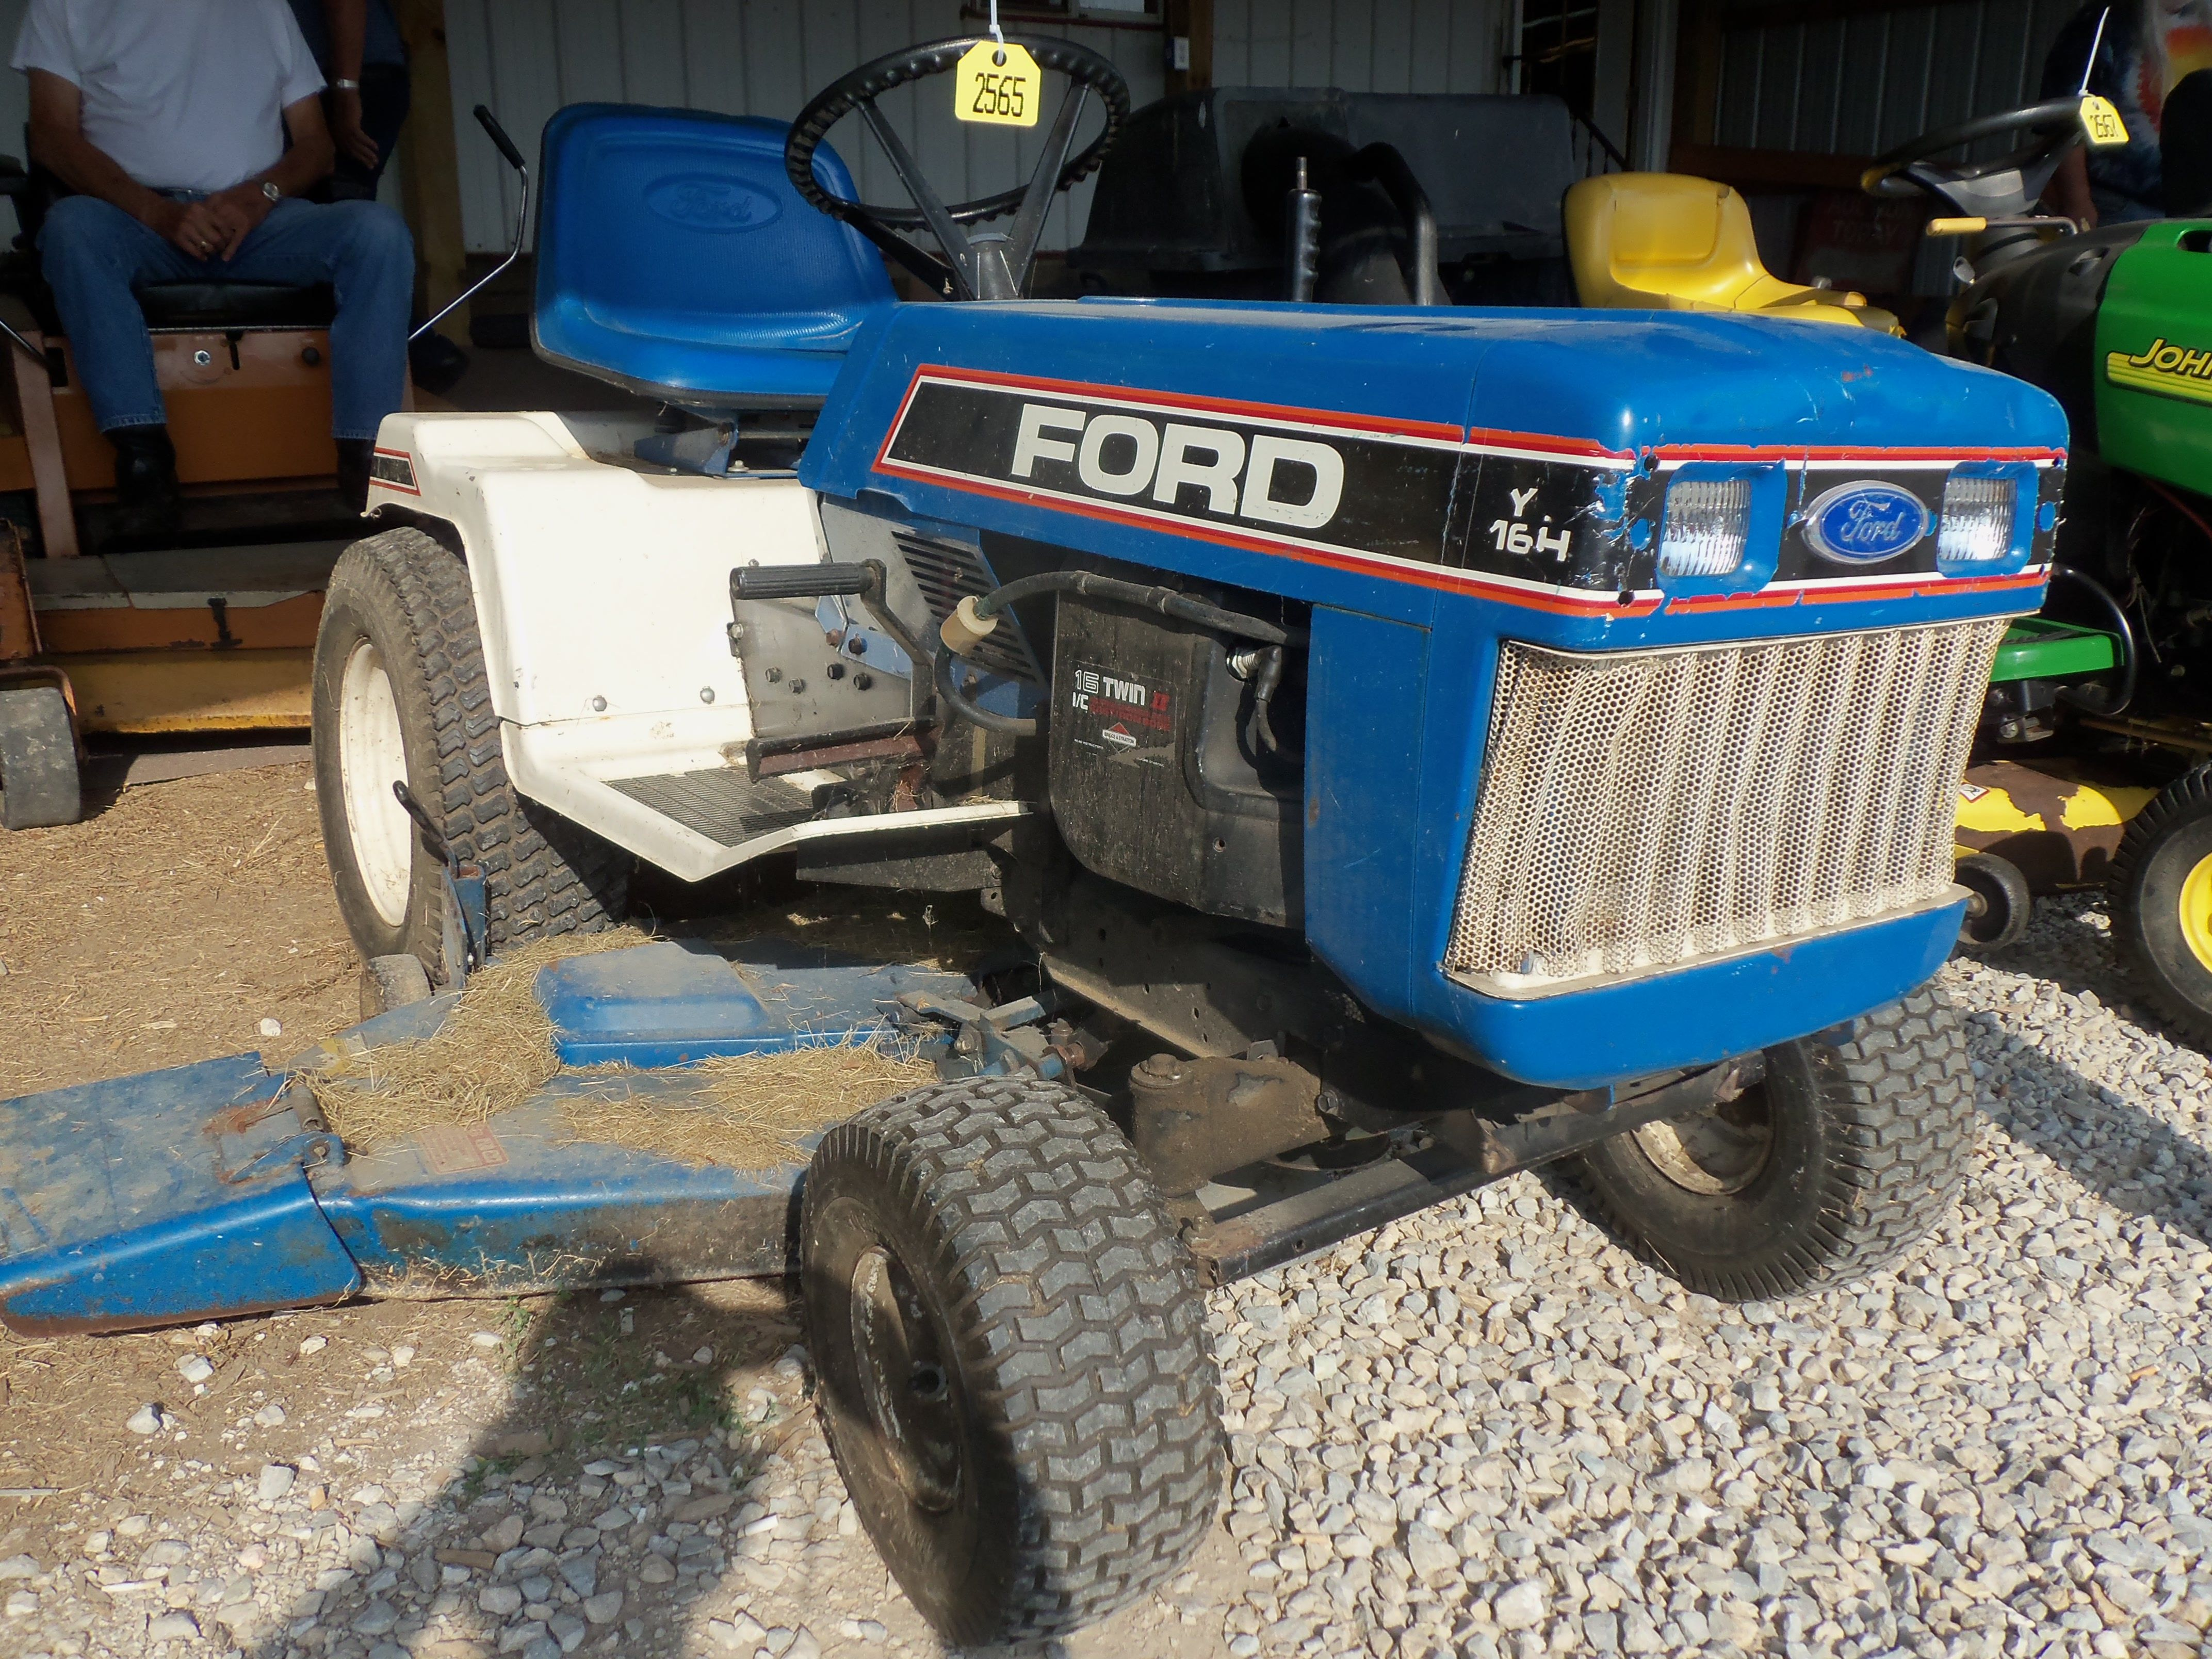 ford yt16h garden lawn tractor sold for 150 00 16hp 608 lbs [ 4288 x 3216 Pixel ]